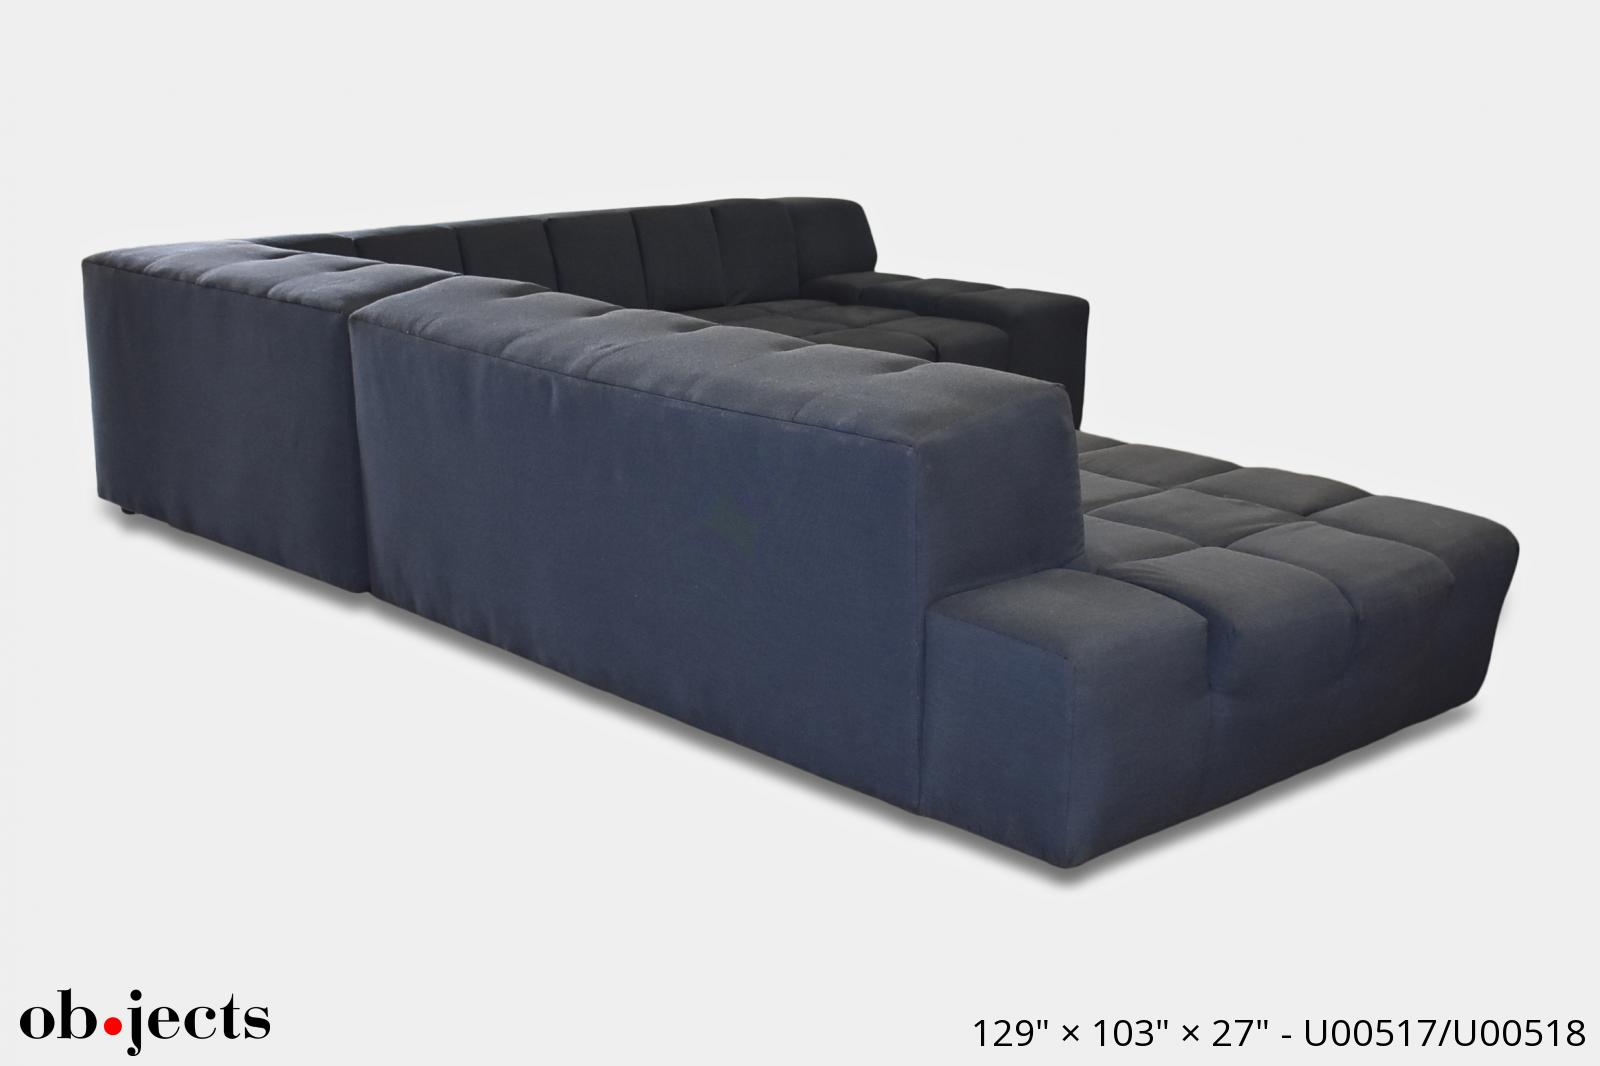 Marvelous Sectional Sofa Navy Blue Extra Large Tufting Objects Short Links Chair Design For Home Short Linksinfo